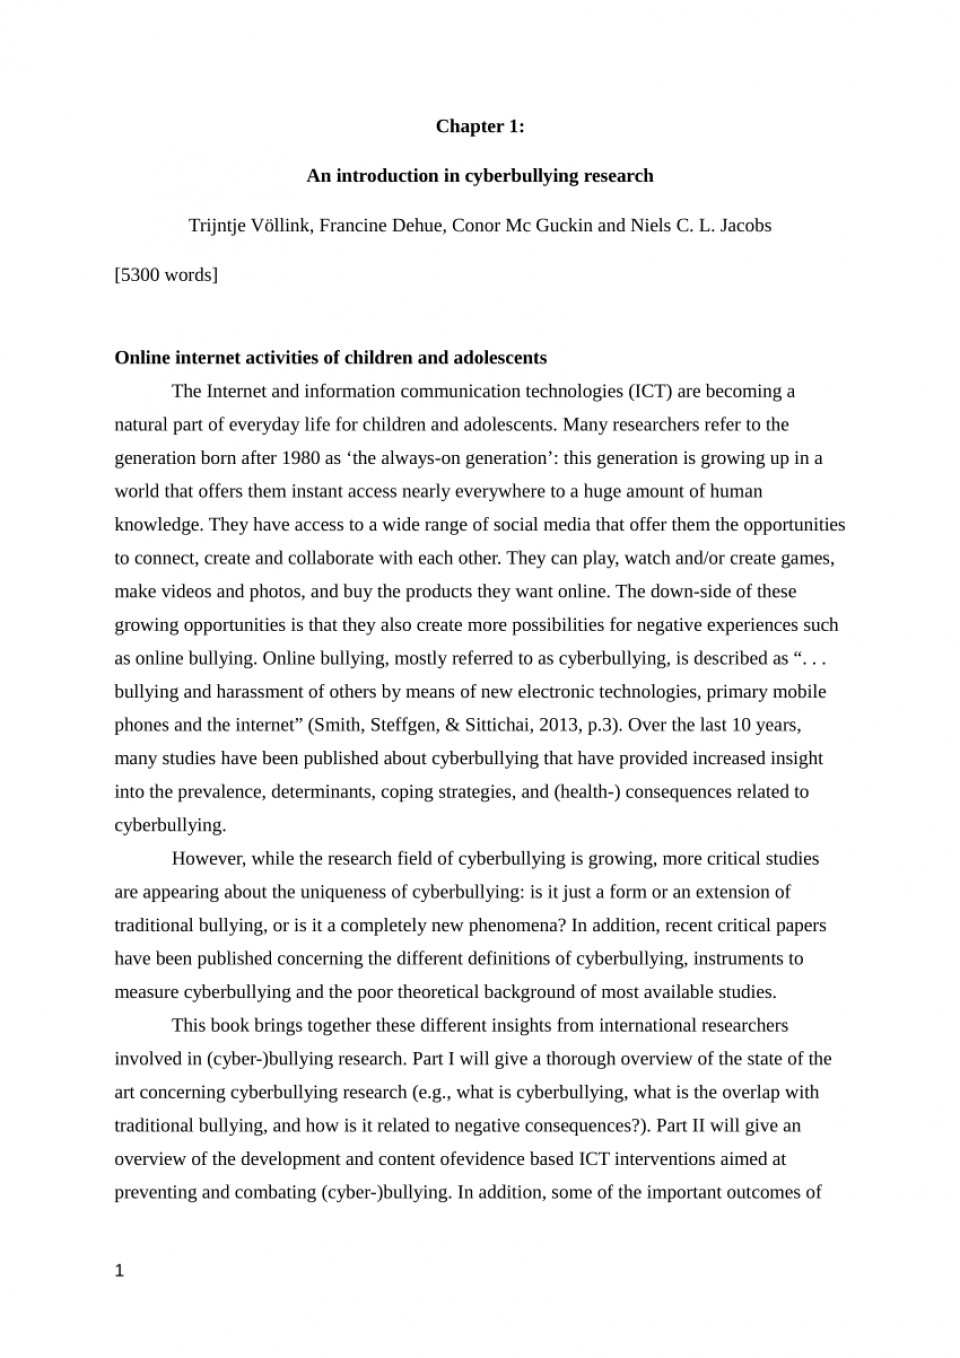 001 Largepreview Research Paper Cyberbullying Remarkable Papers Effects Of Pdf Titles 960